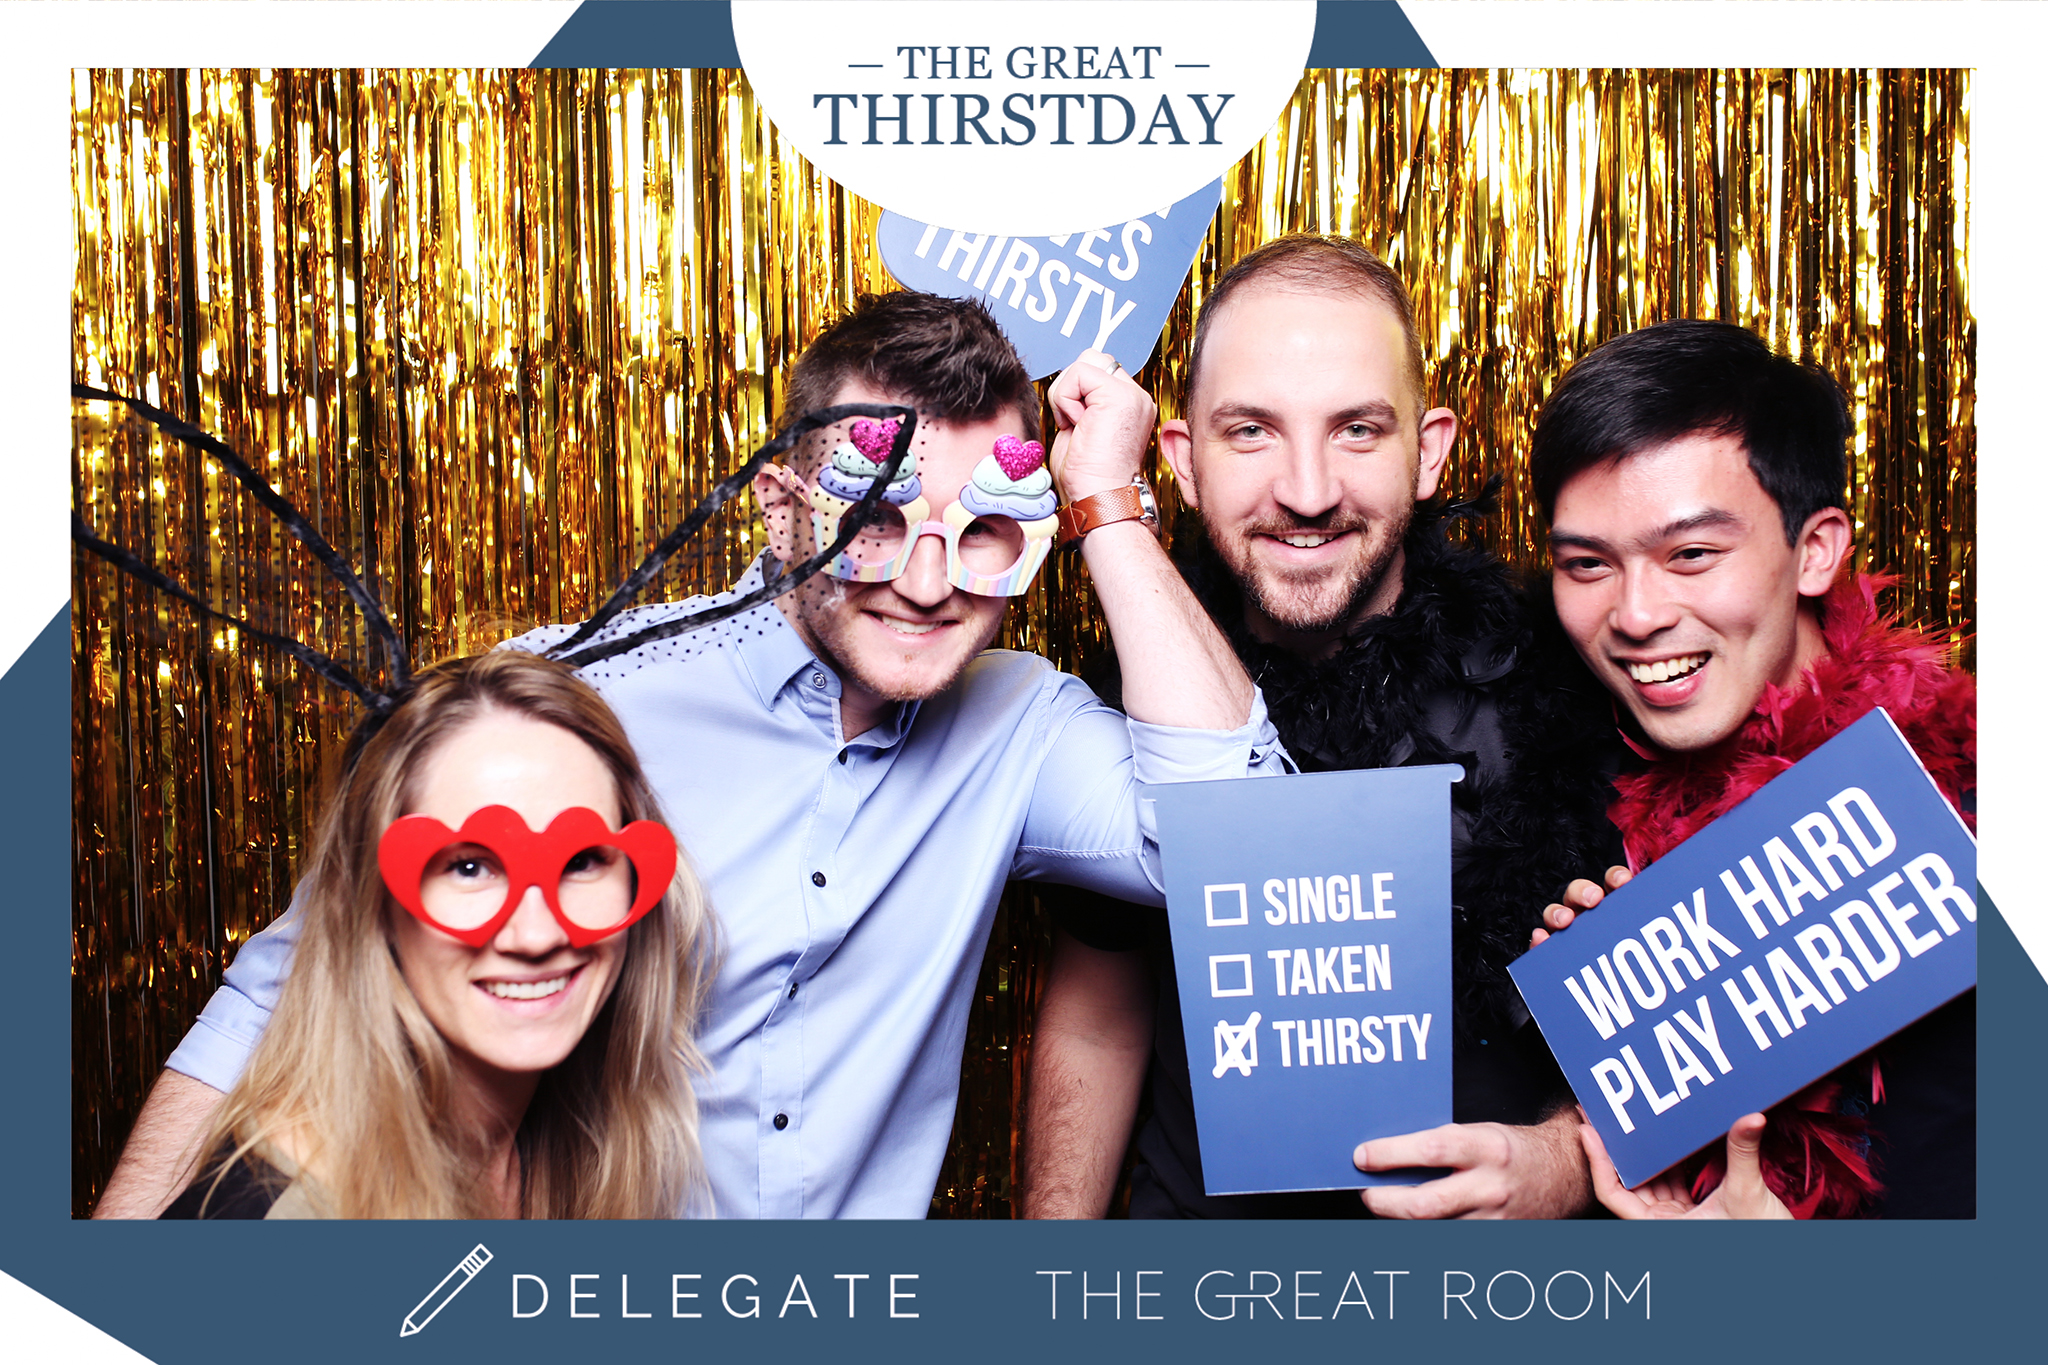 Delegate x The Great Thirstday13